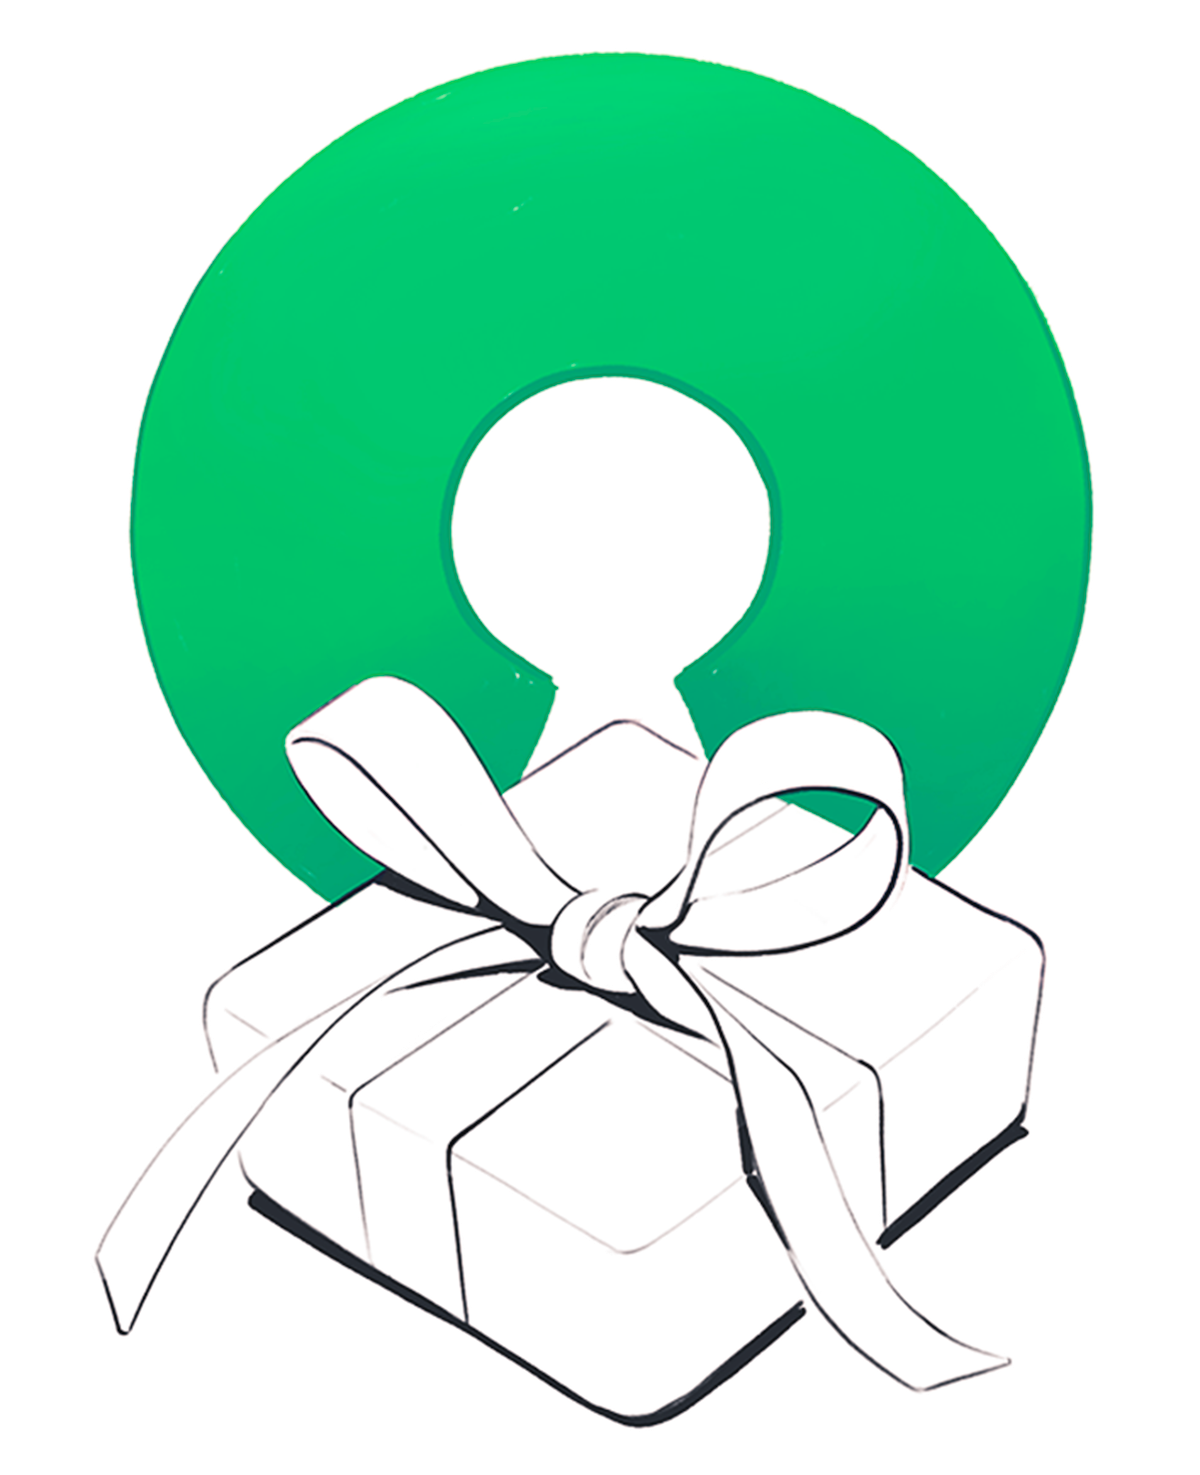 Illustration of a gift and the open source software symbol